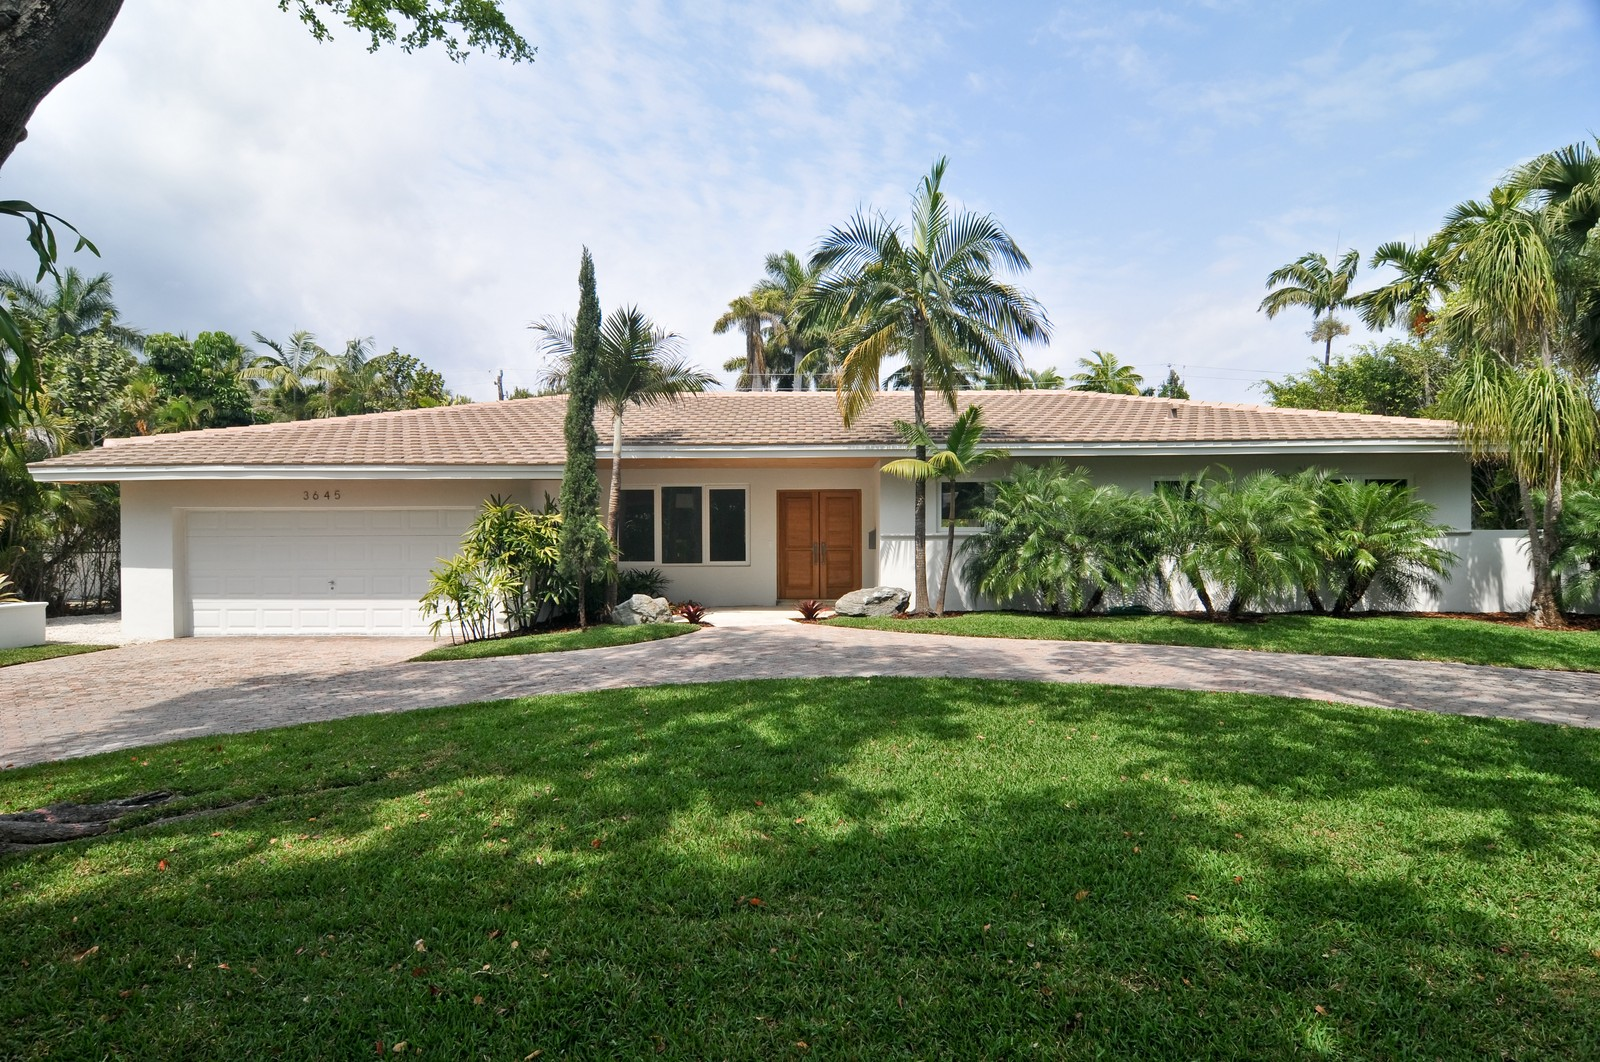 Real Estate Photography - 3645 Battersea, Miami, FL, 33133 - Front View